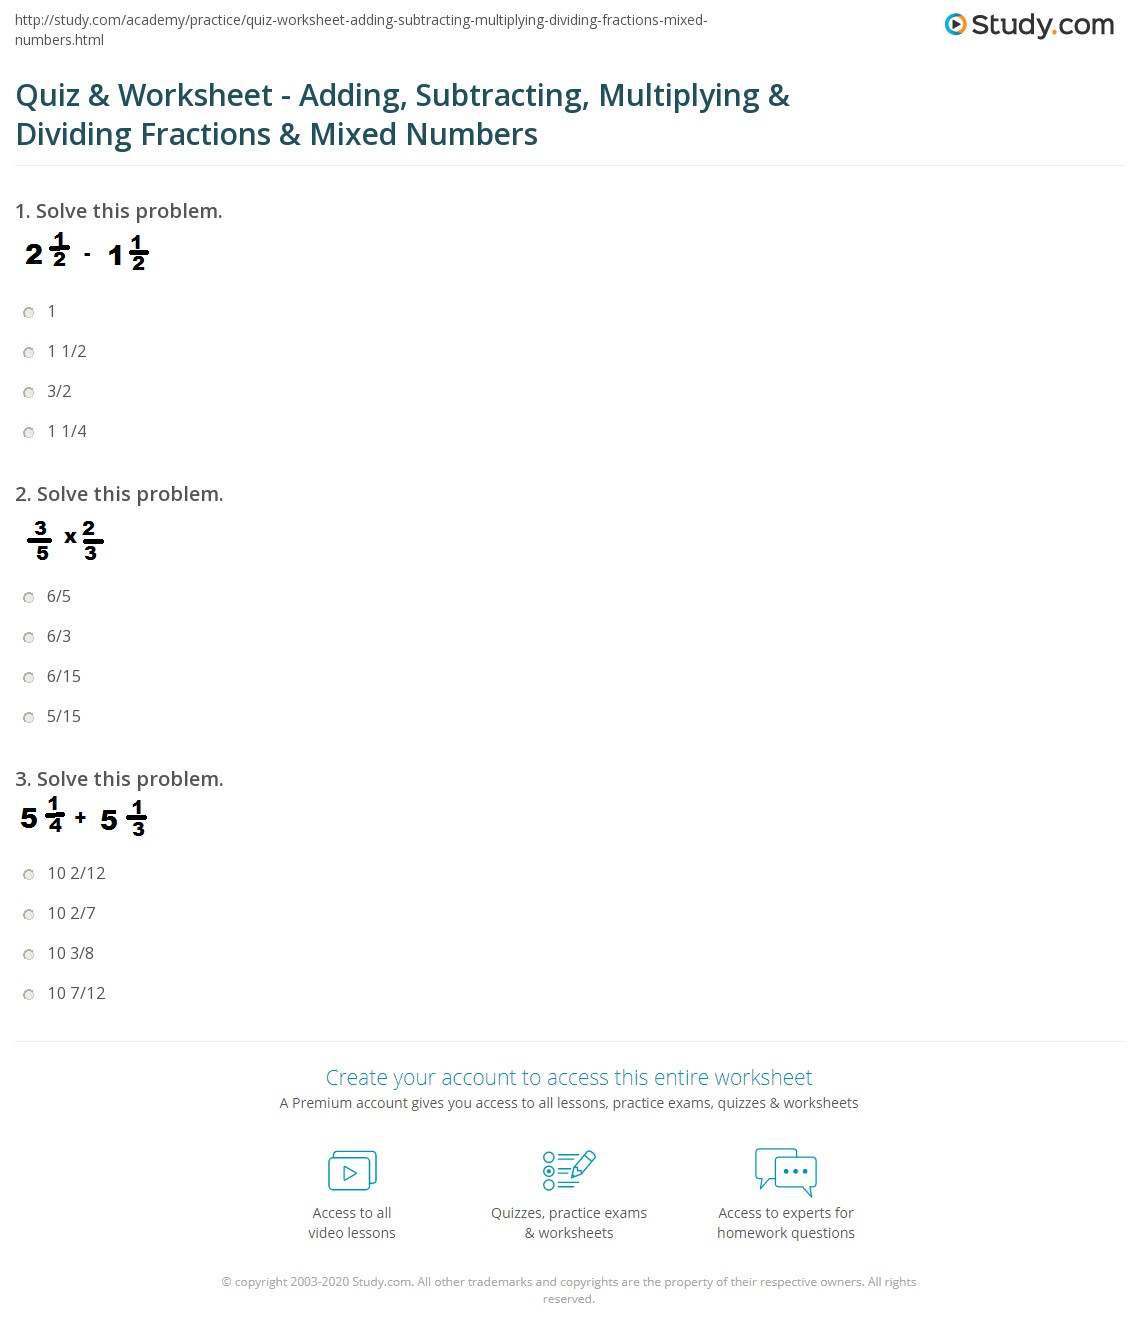 Quiz Worksheet Adding Subtracting Multiplying Dividing – Worksheet on Dividing Fractions